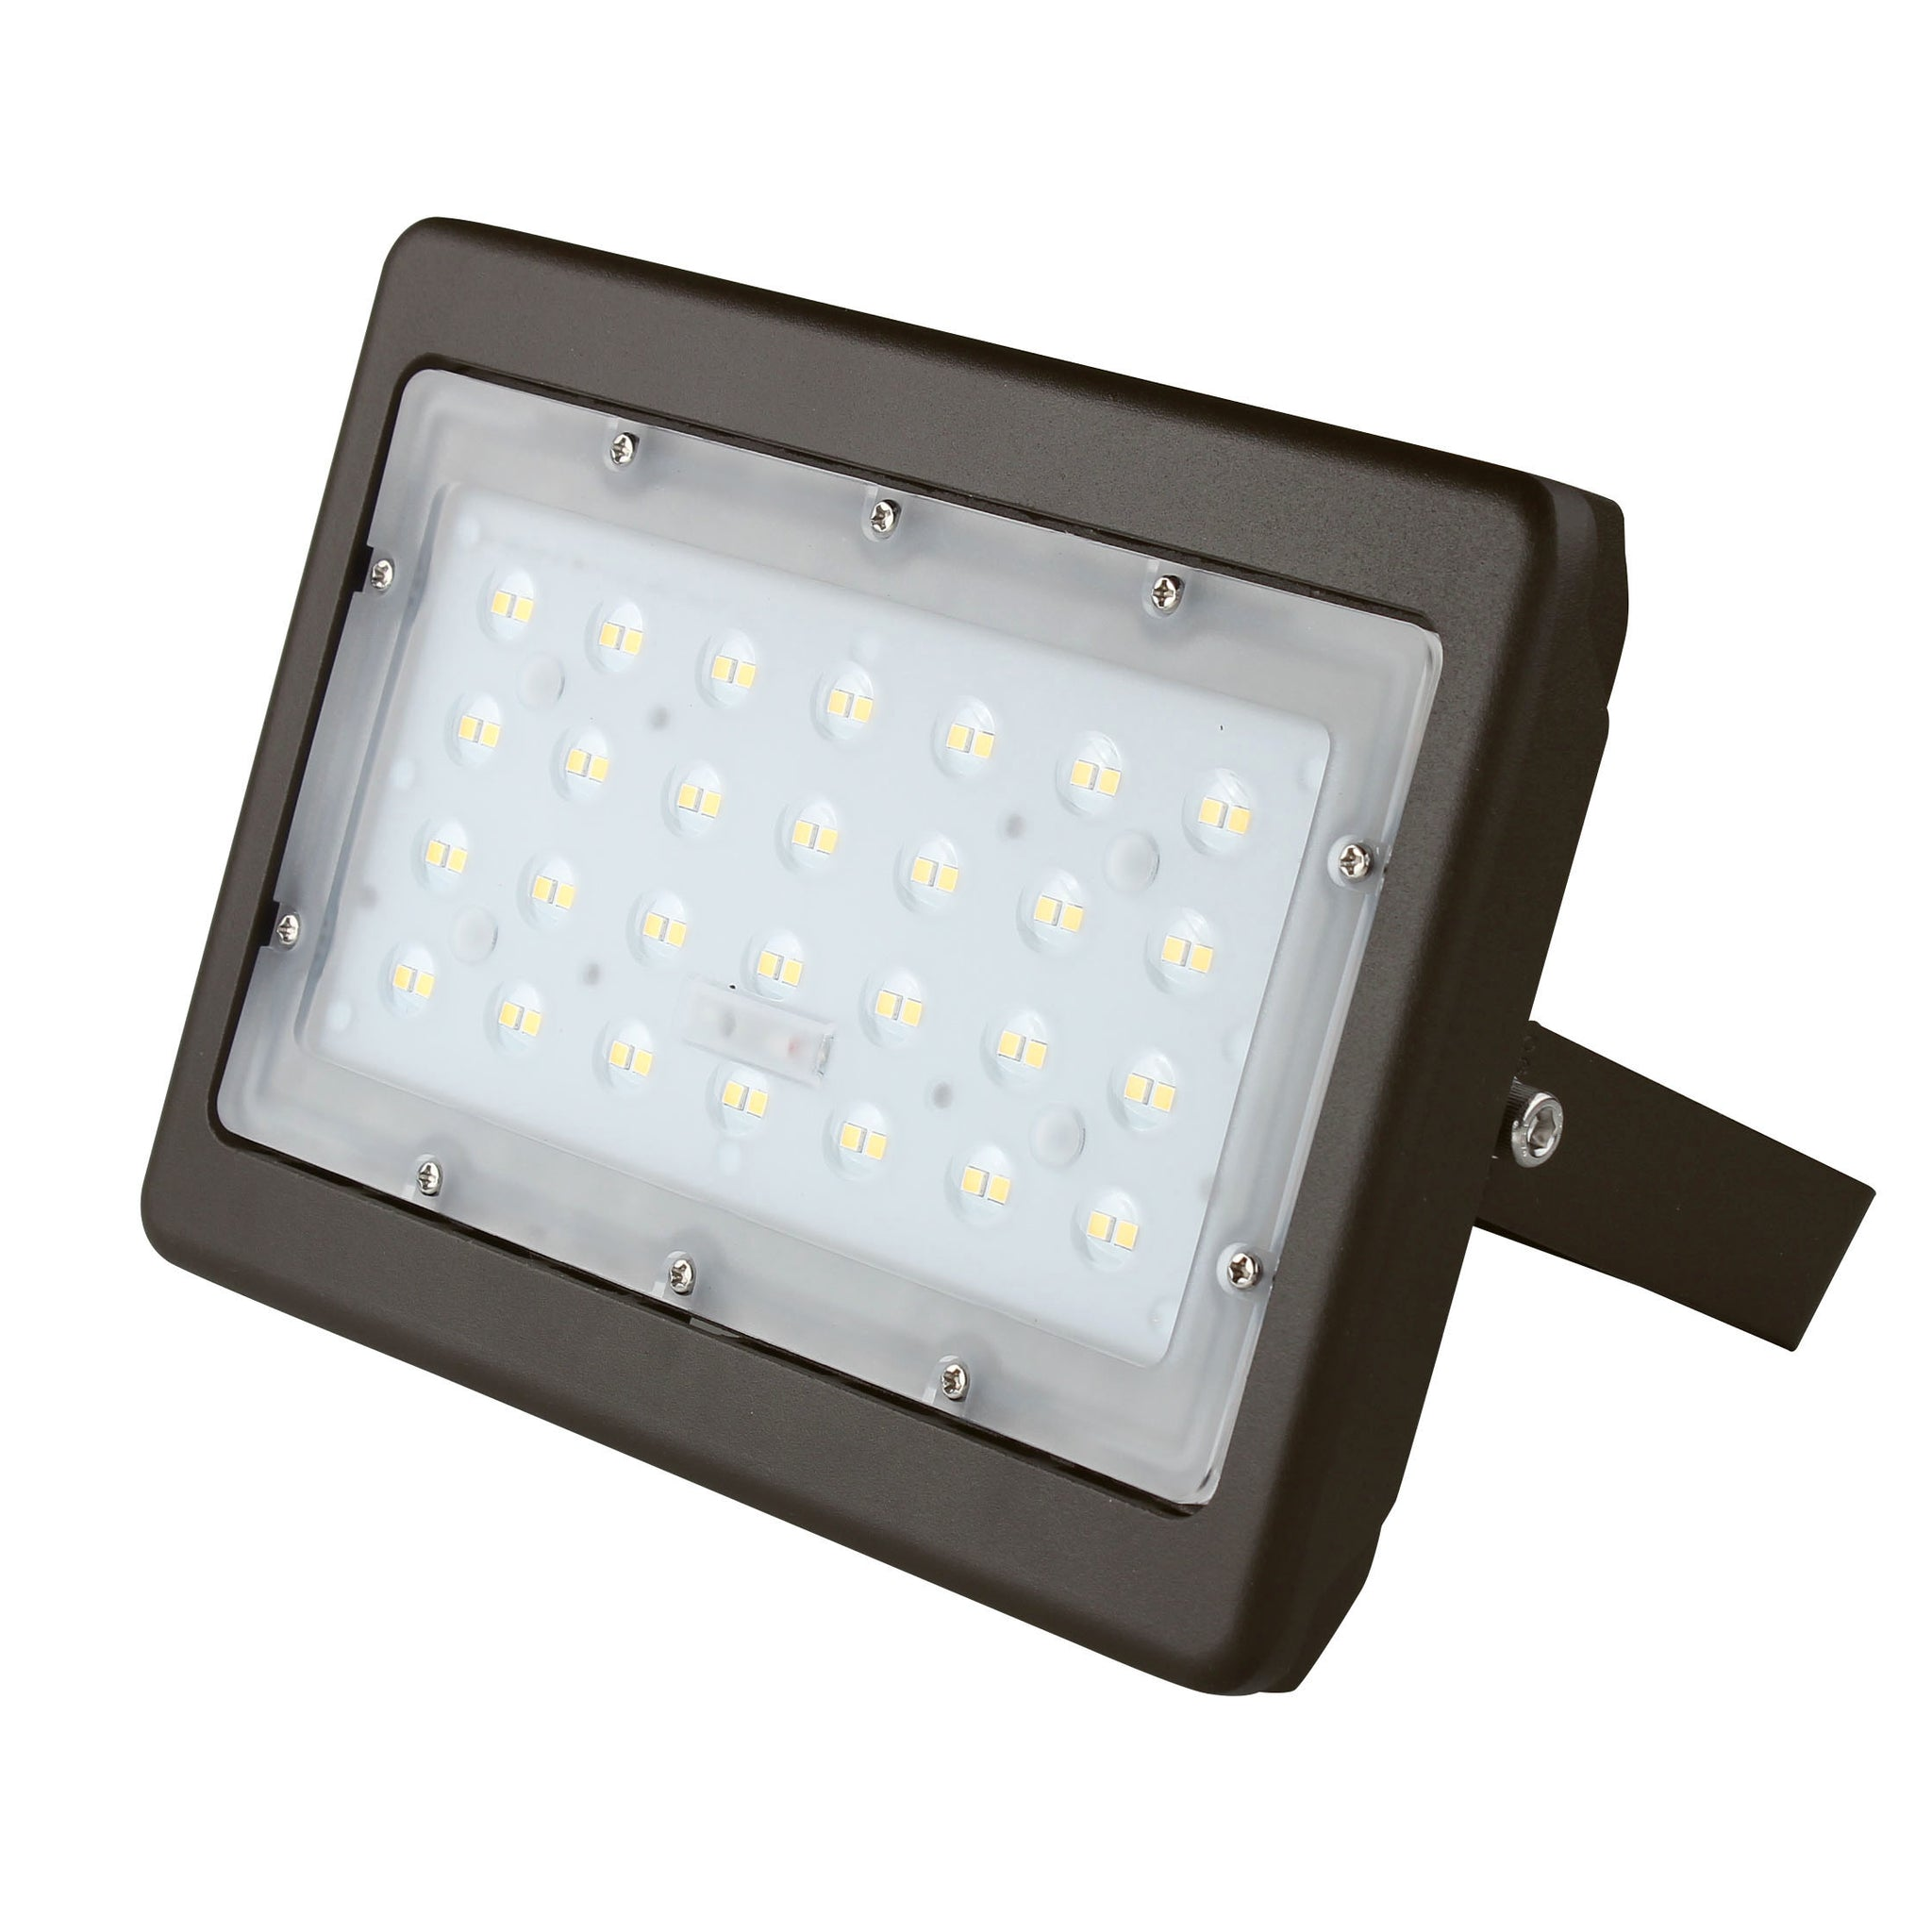 LED Area Light Multi-Purpose - 50 Watts - 5,800 Lumens